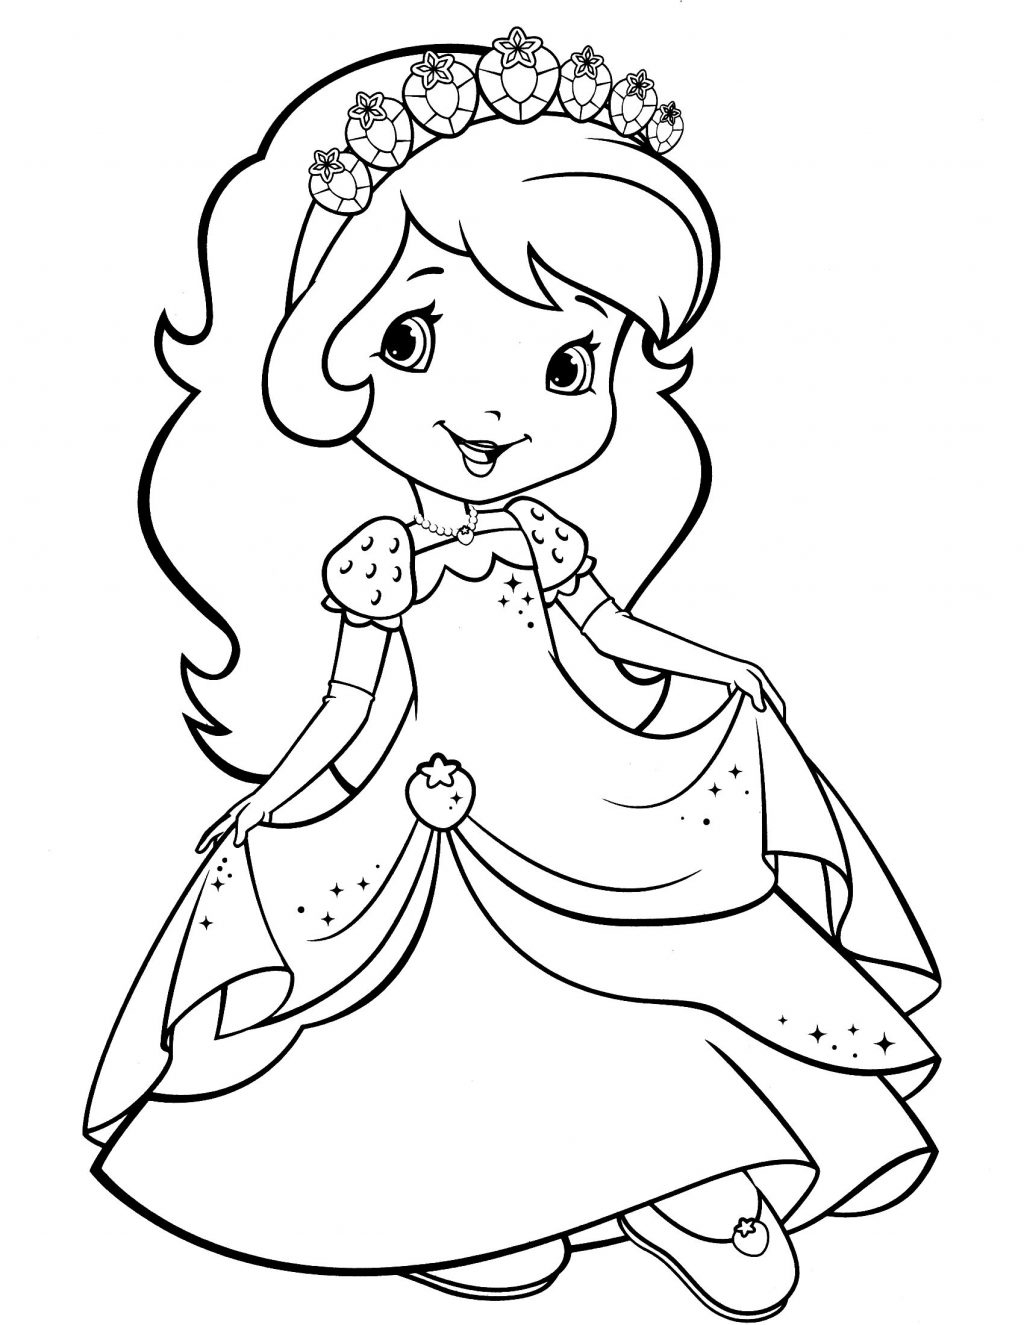 Strawberry Shortcake Coloring Pages Coloring Pages Strawberry Shortcakeloring Book Best Of Pages